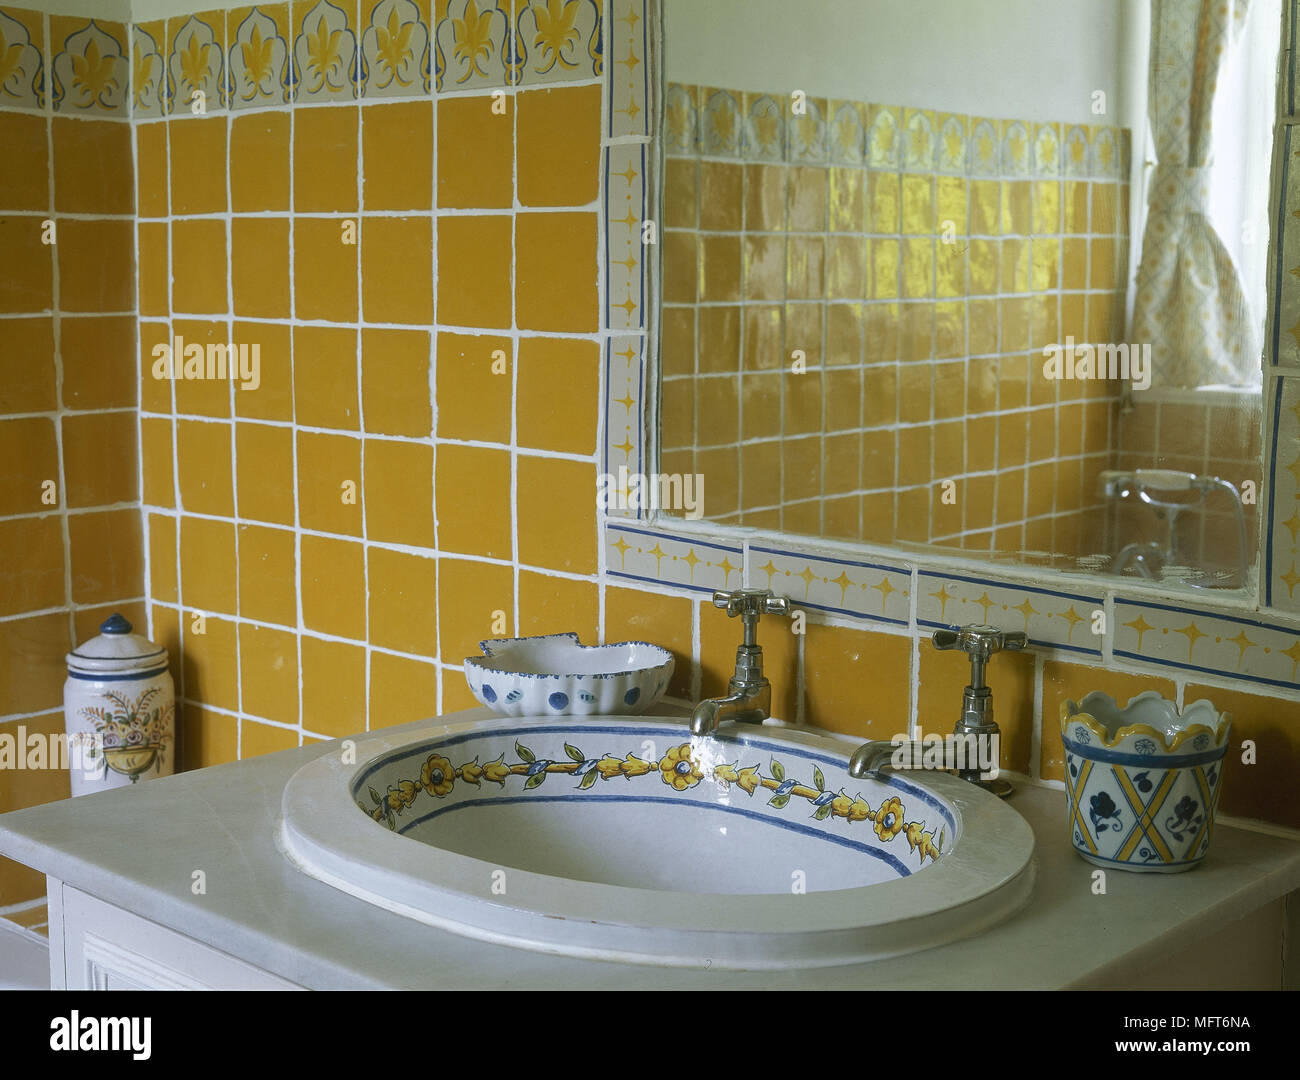 Country Bathroom Detail Yellow Tiles Ceramic Decorated Washbasin Set In Marble Top Interiors Bathrooms Sinks Stock Photo Alamy